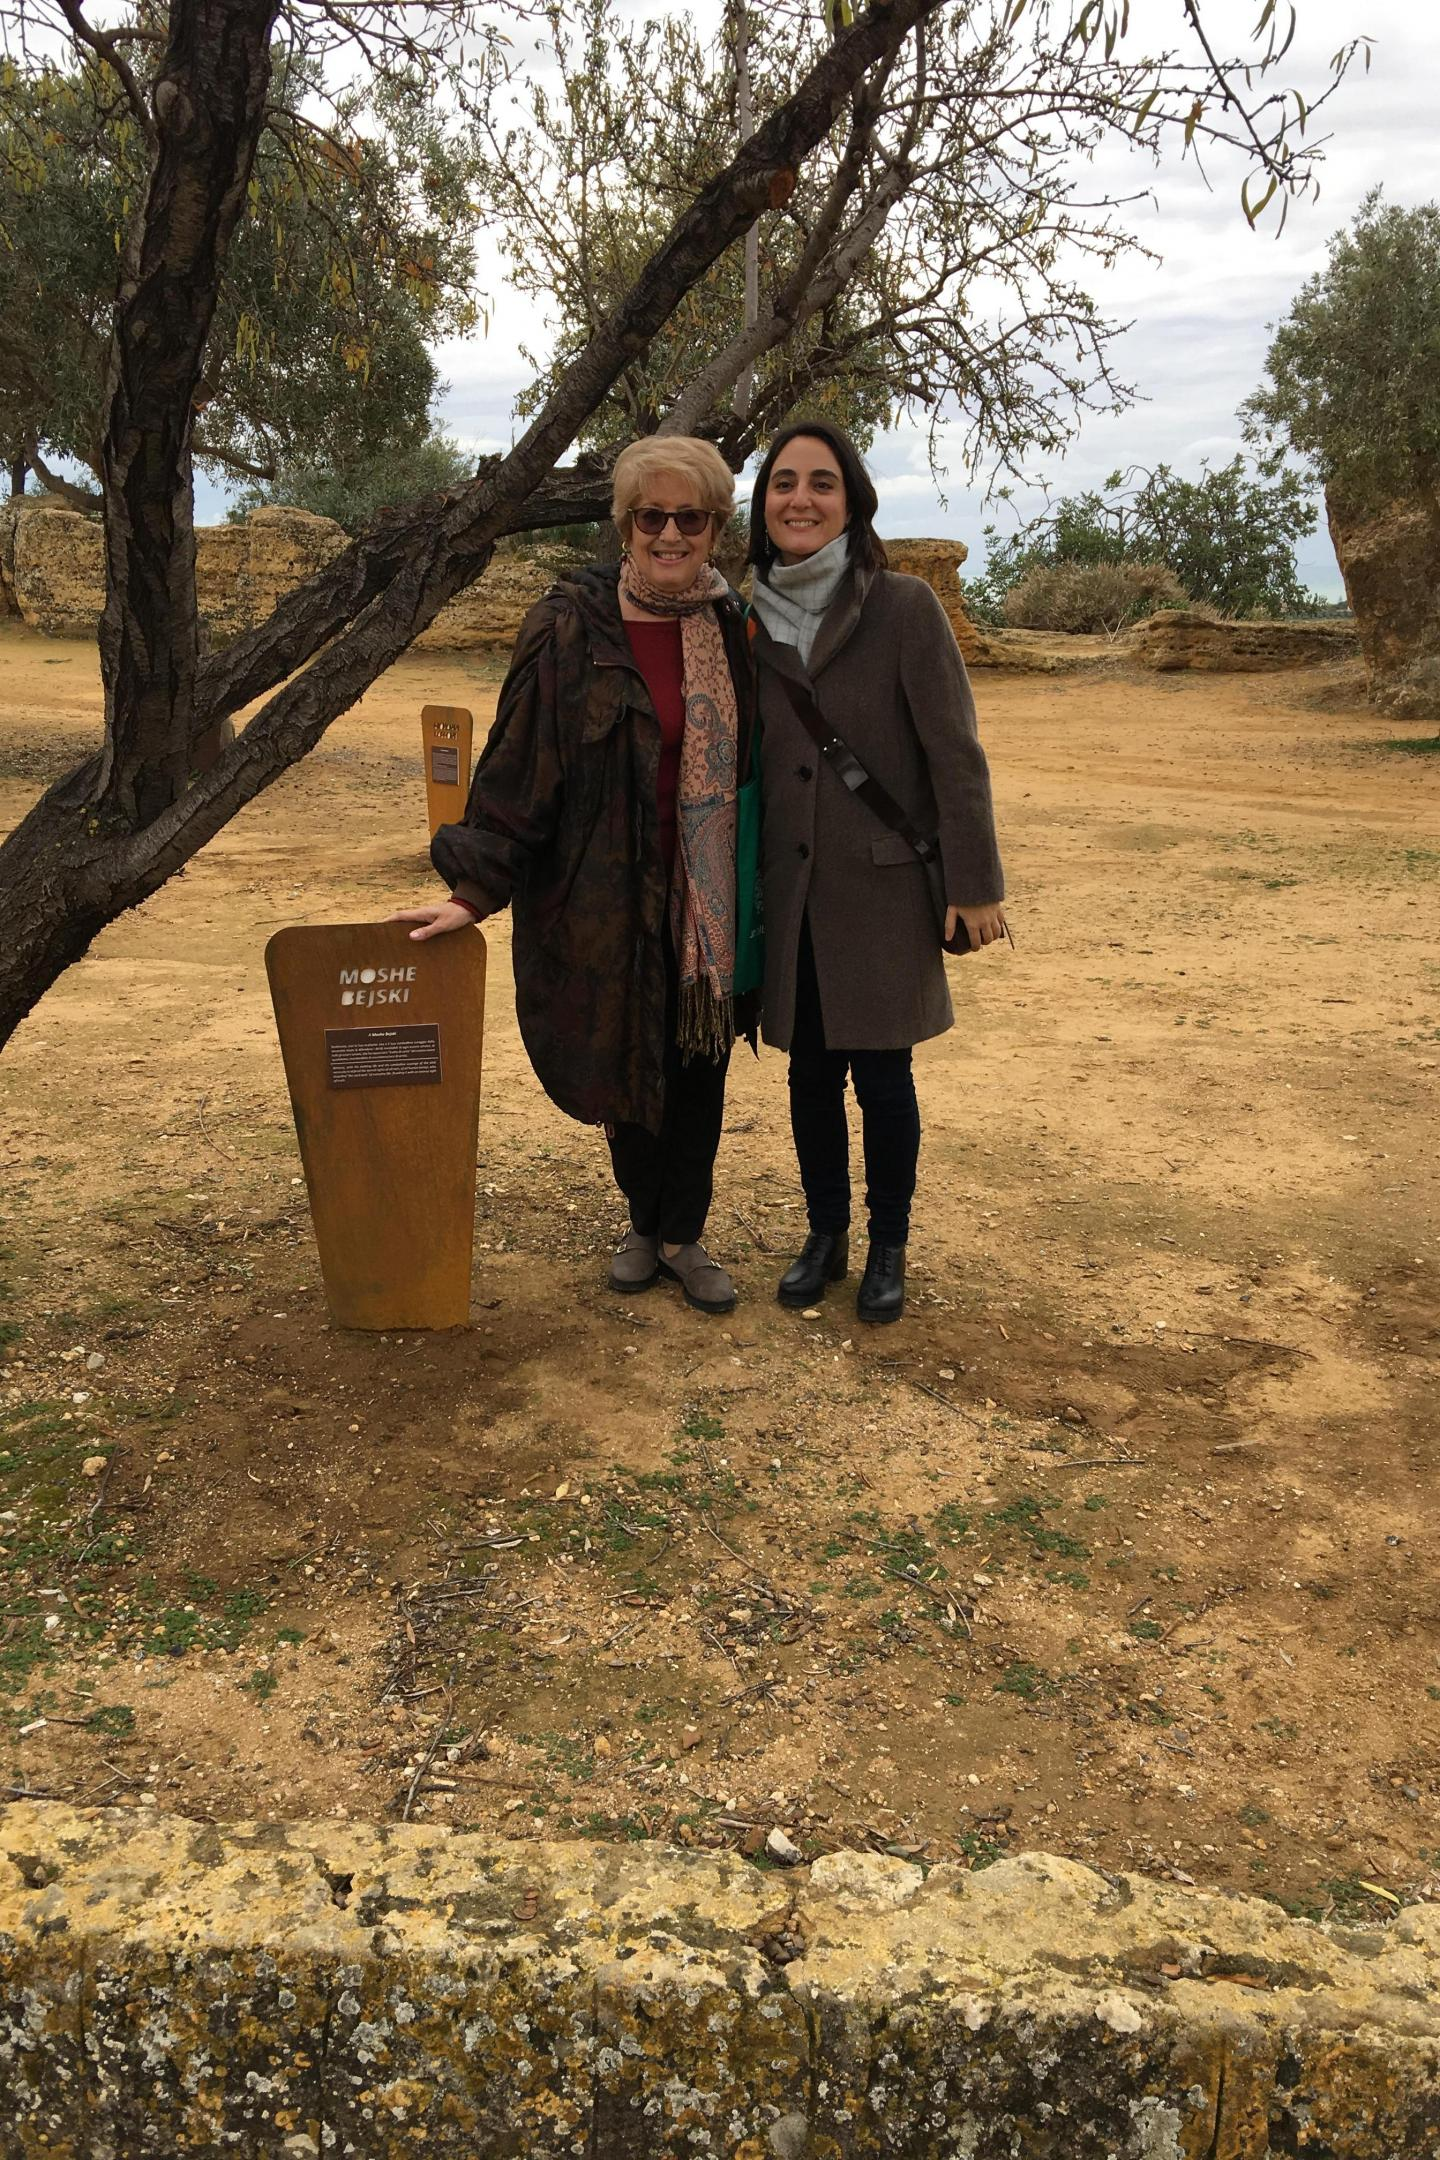 Ulianova Radice, director of Gariwo, and Valentina De Fazio with the plaque dedicated to Moshe Bejski, creator of the Garden of the Righteous